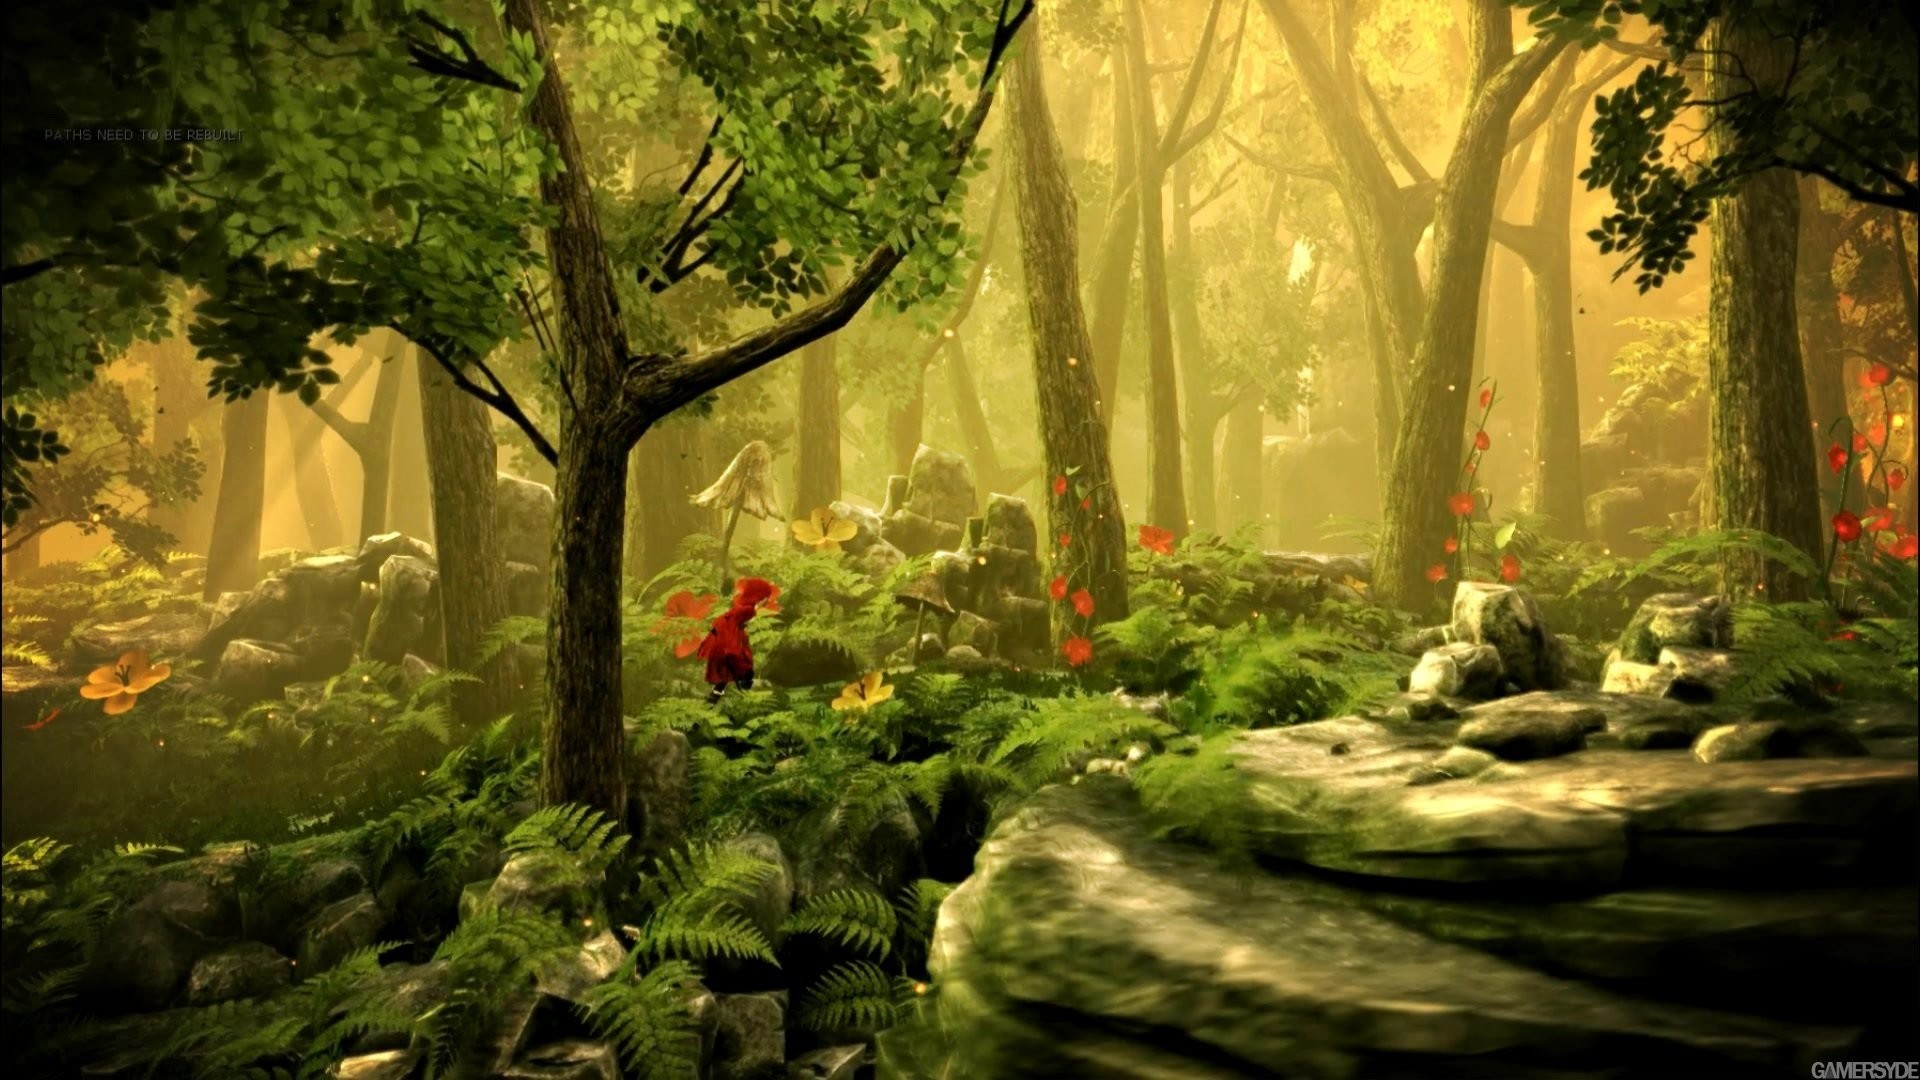 1920x1080 Fairytale Forest Full Photo | Wallpaper HD Collections